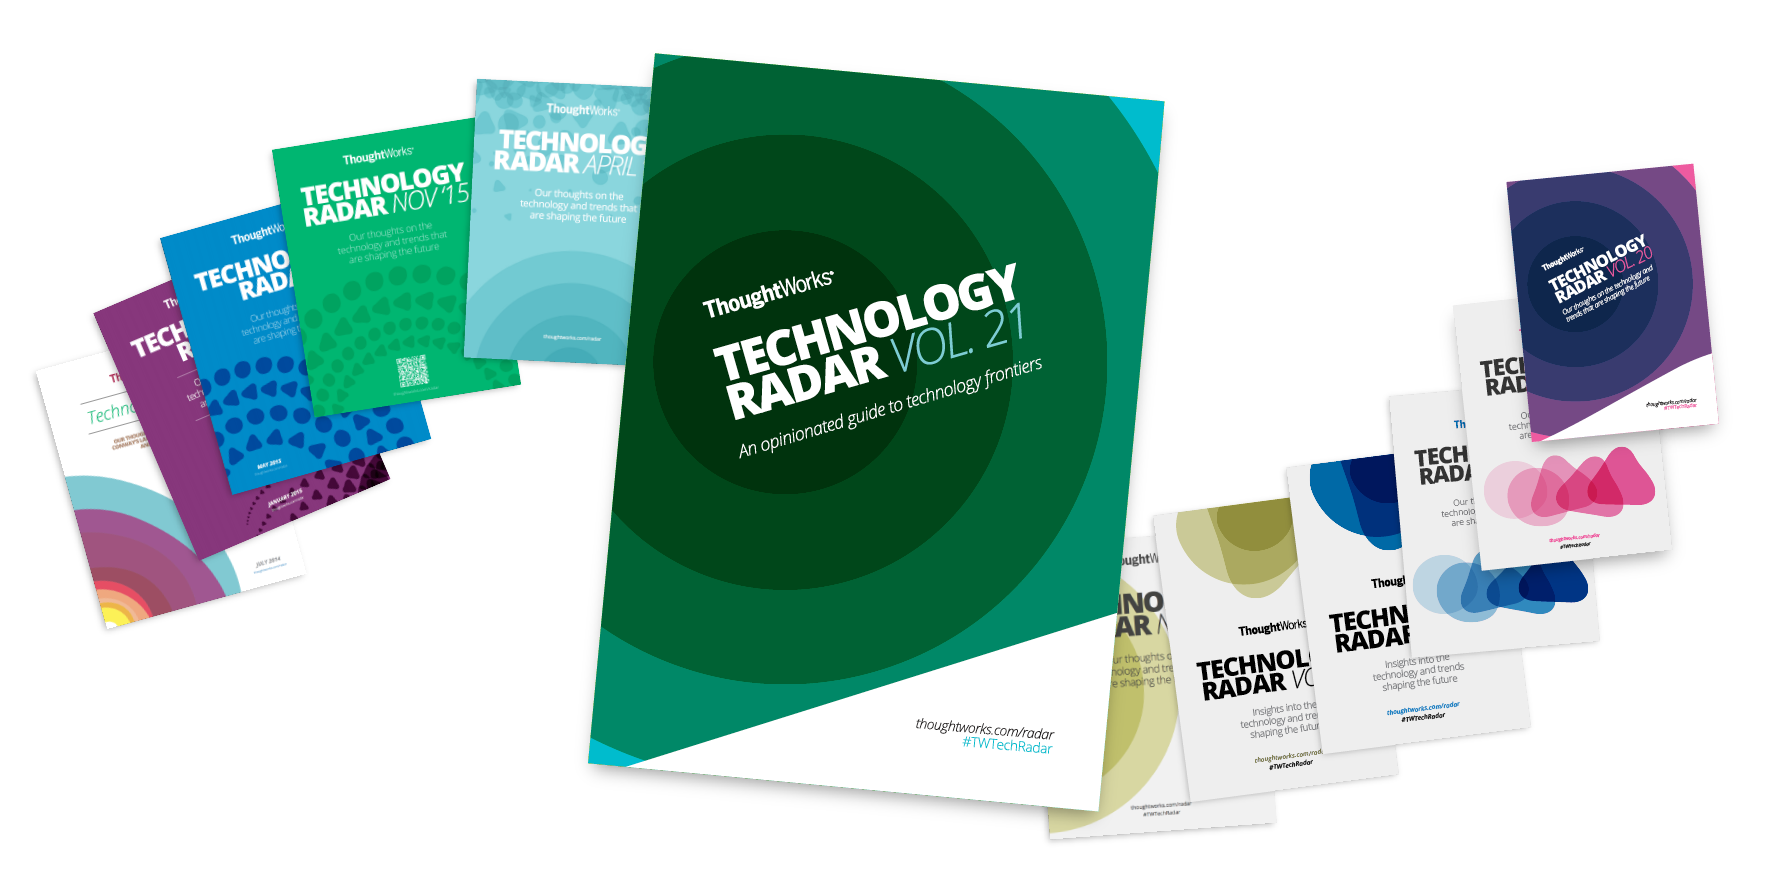 The Technology Radar